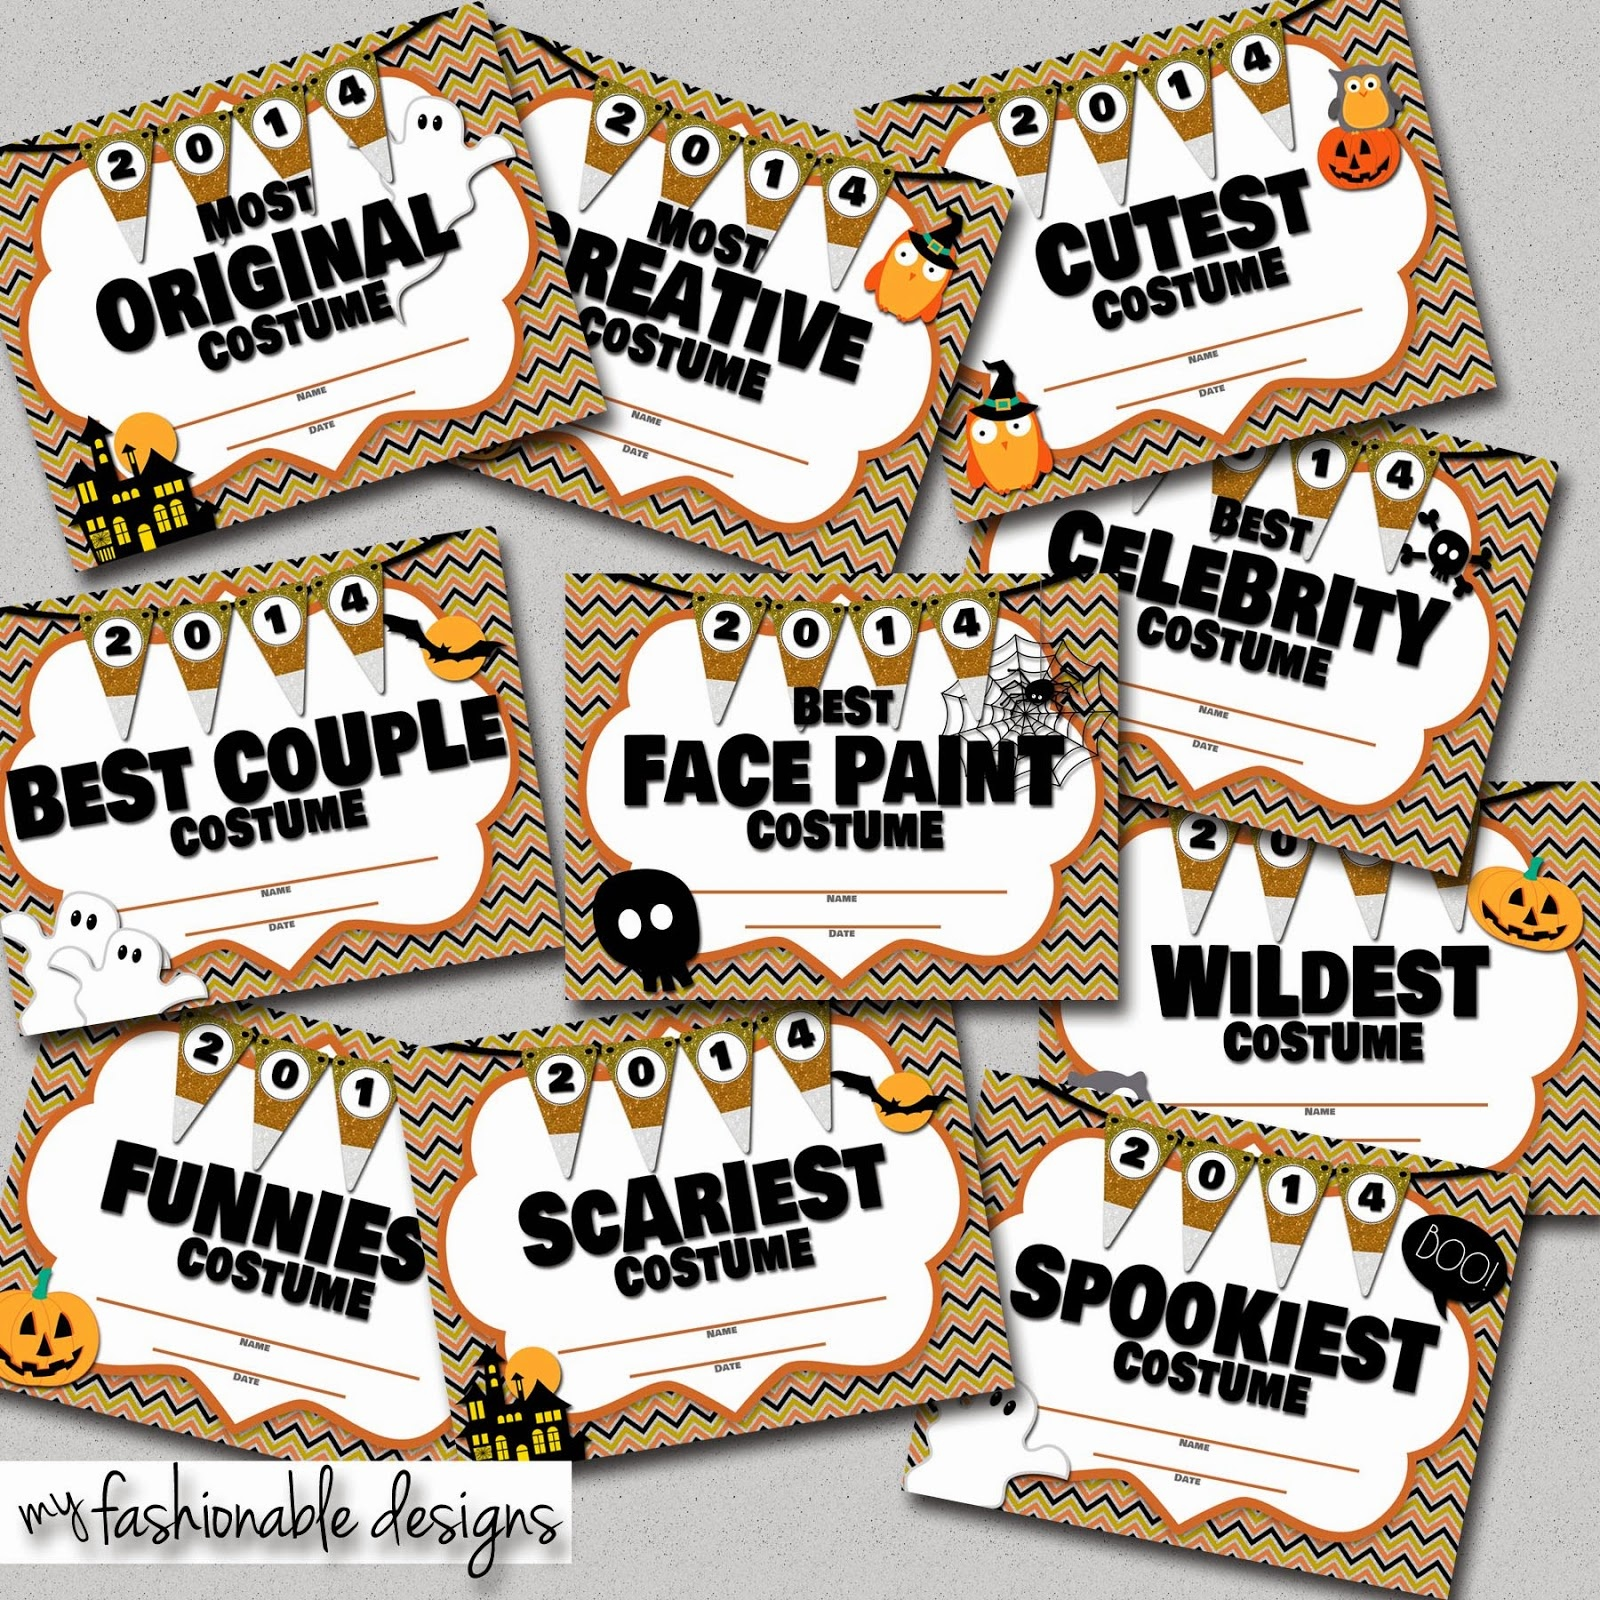 My Fashionable Designs: Halloween Costume Contest Certificates - Free Printable Halloween Award Certificates